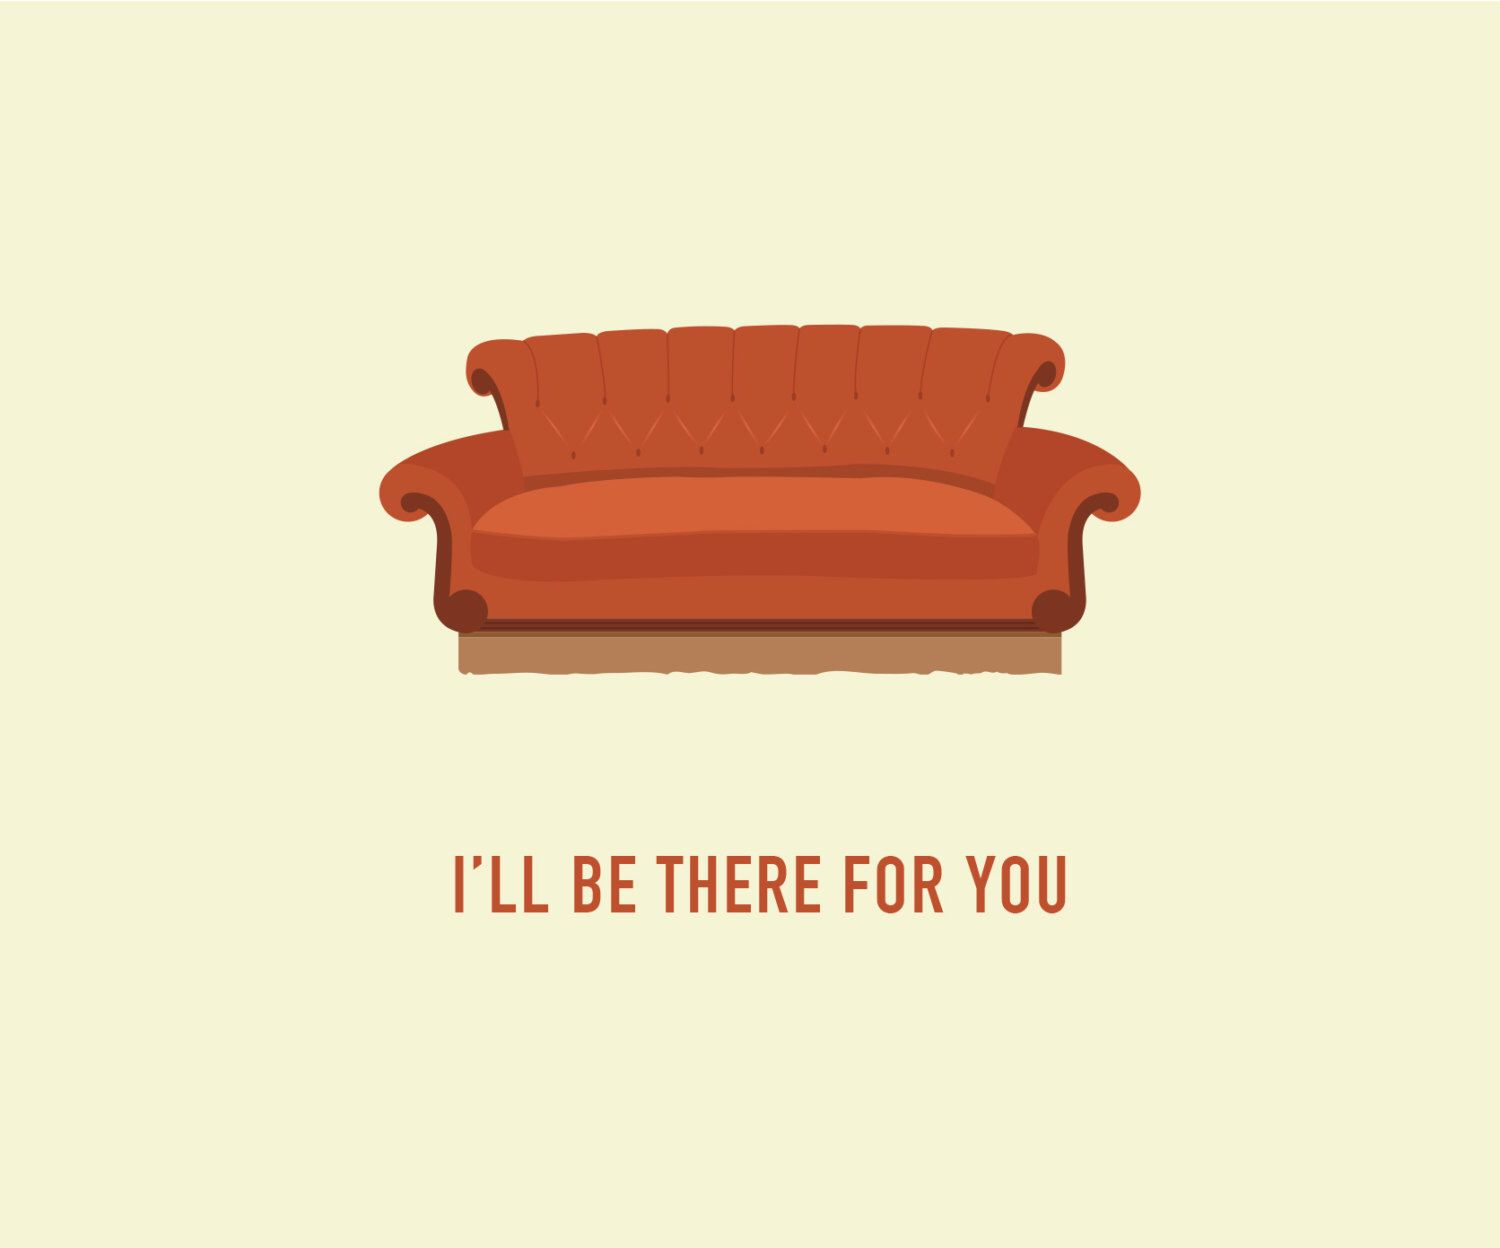 sofa from friends brown tweed tv show card central perk couch any